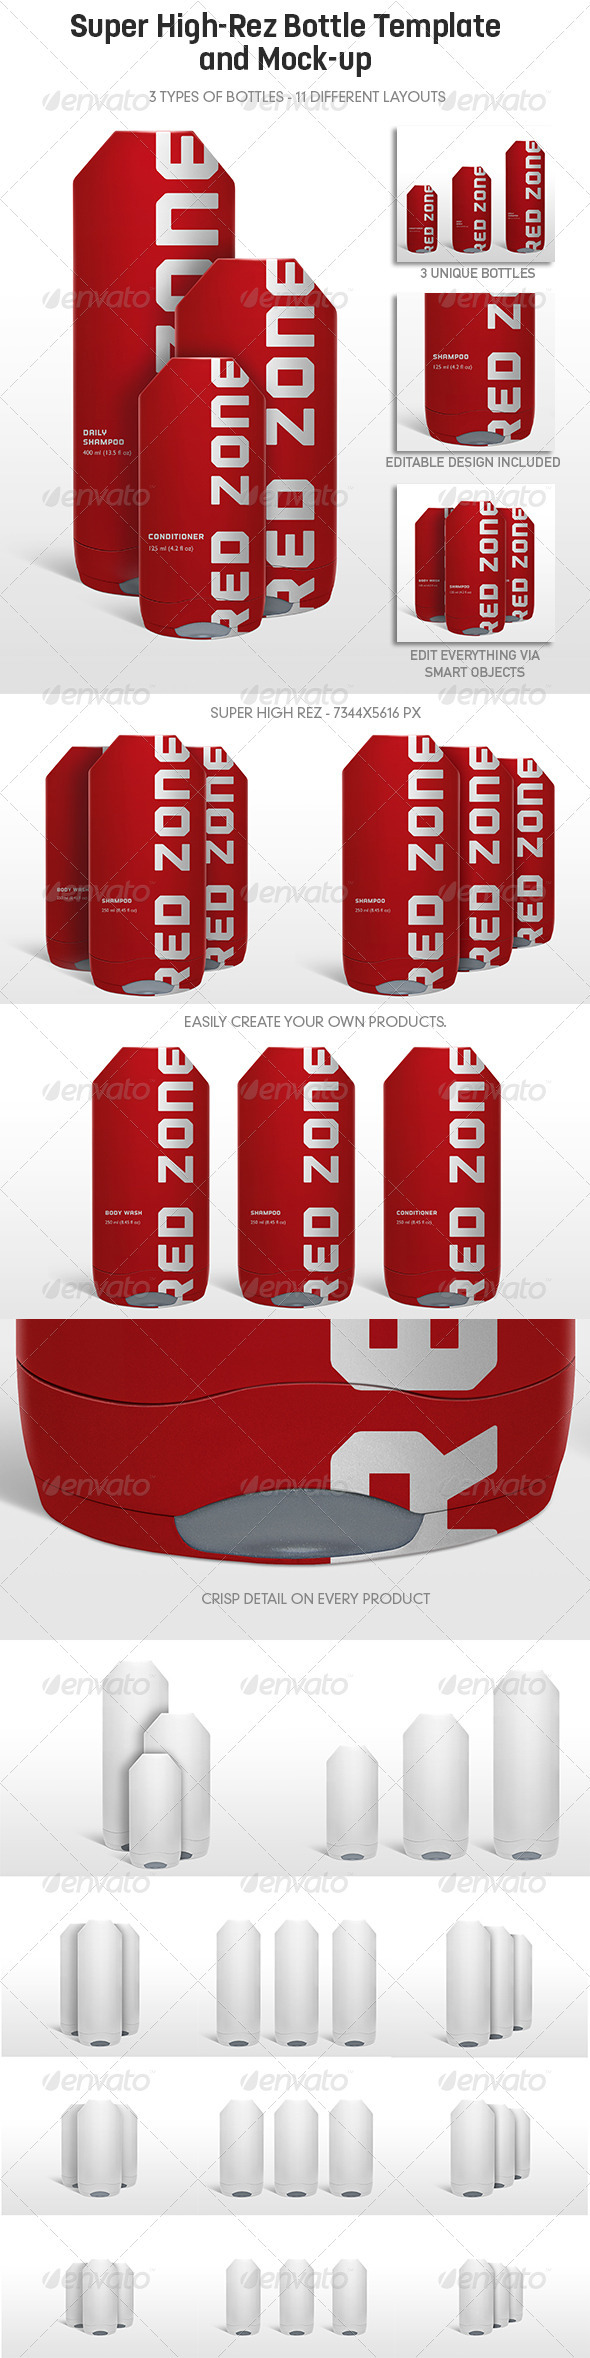 Multi-Purpose Highrez Bottle Mockup & Template - Food and Drink Packaging